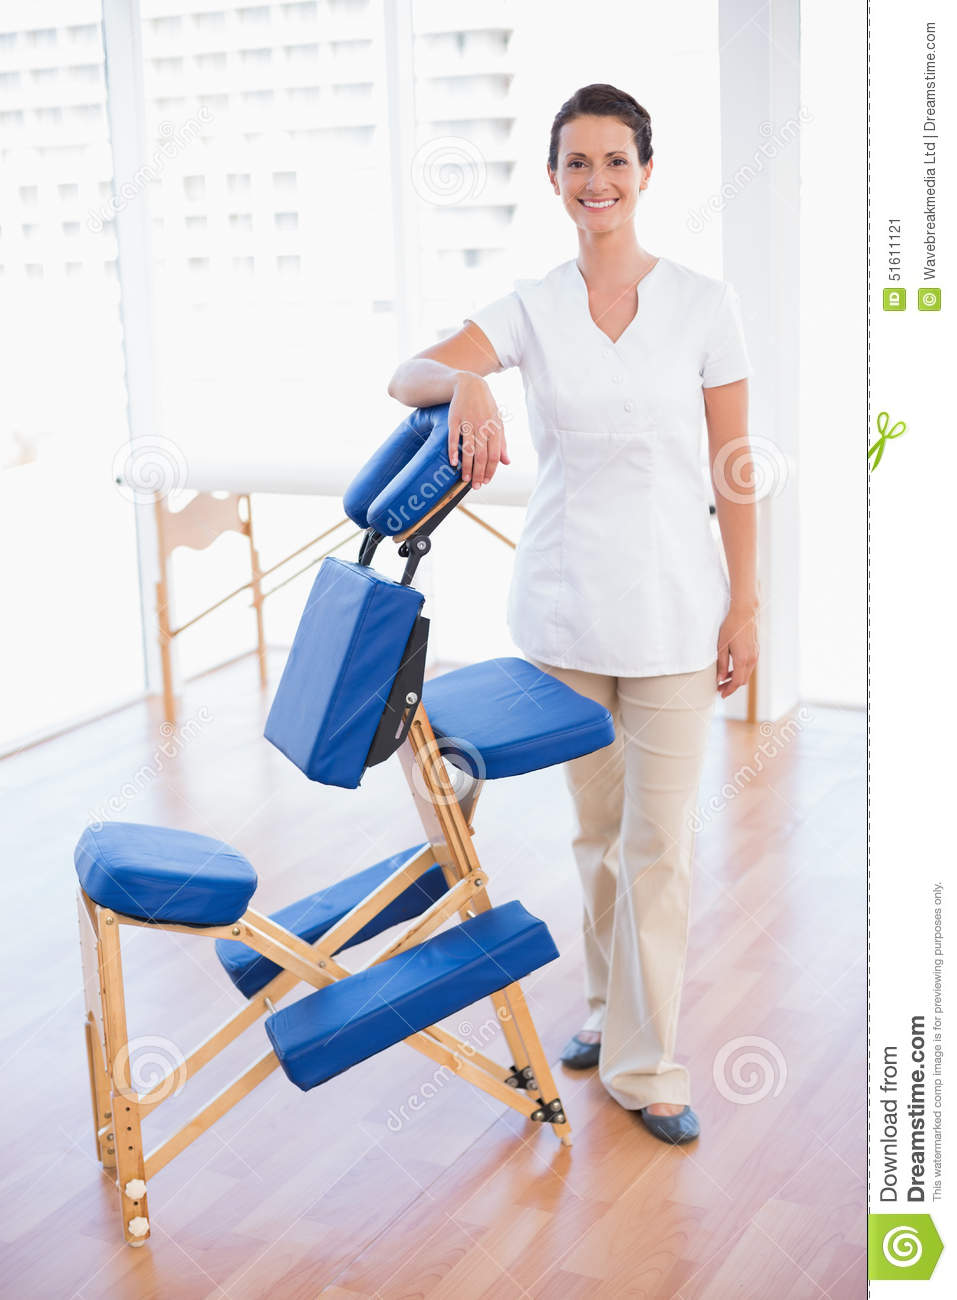 Massage Therapist Chair Smiling Therapist Standing With Massage Chair Stock Image Image